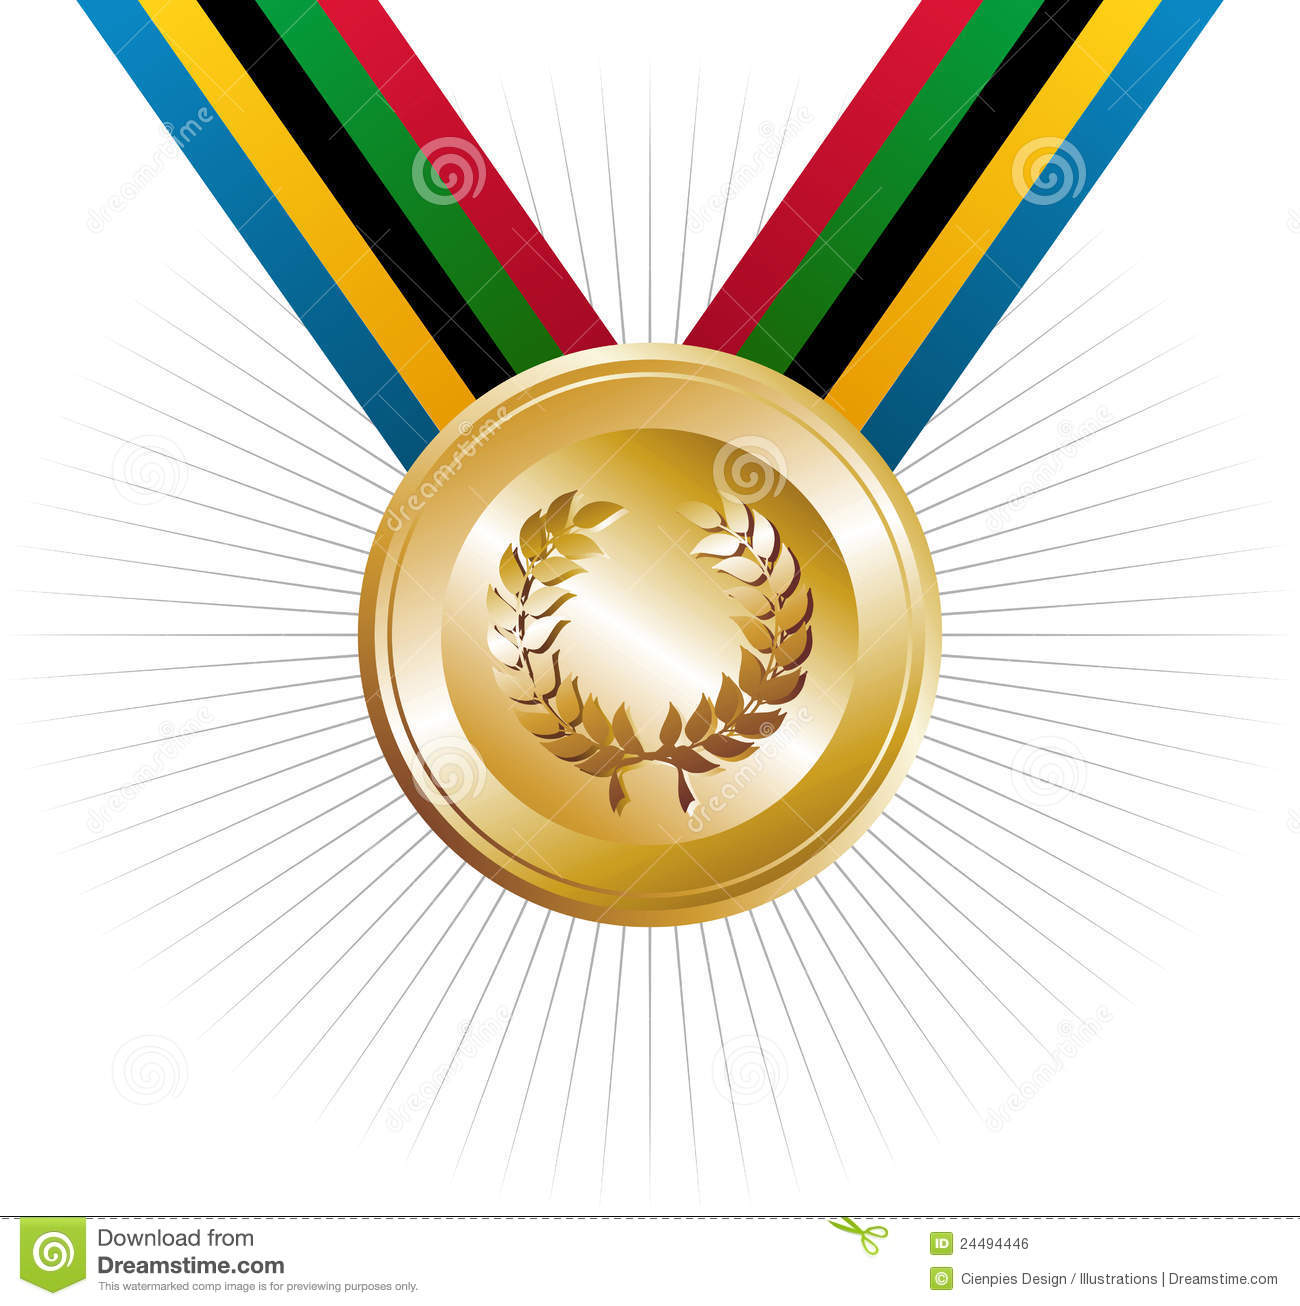 Olympics Games Gold Medal With Laurel Wreath Royalty Free Stock Image ...